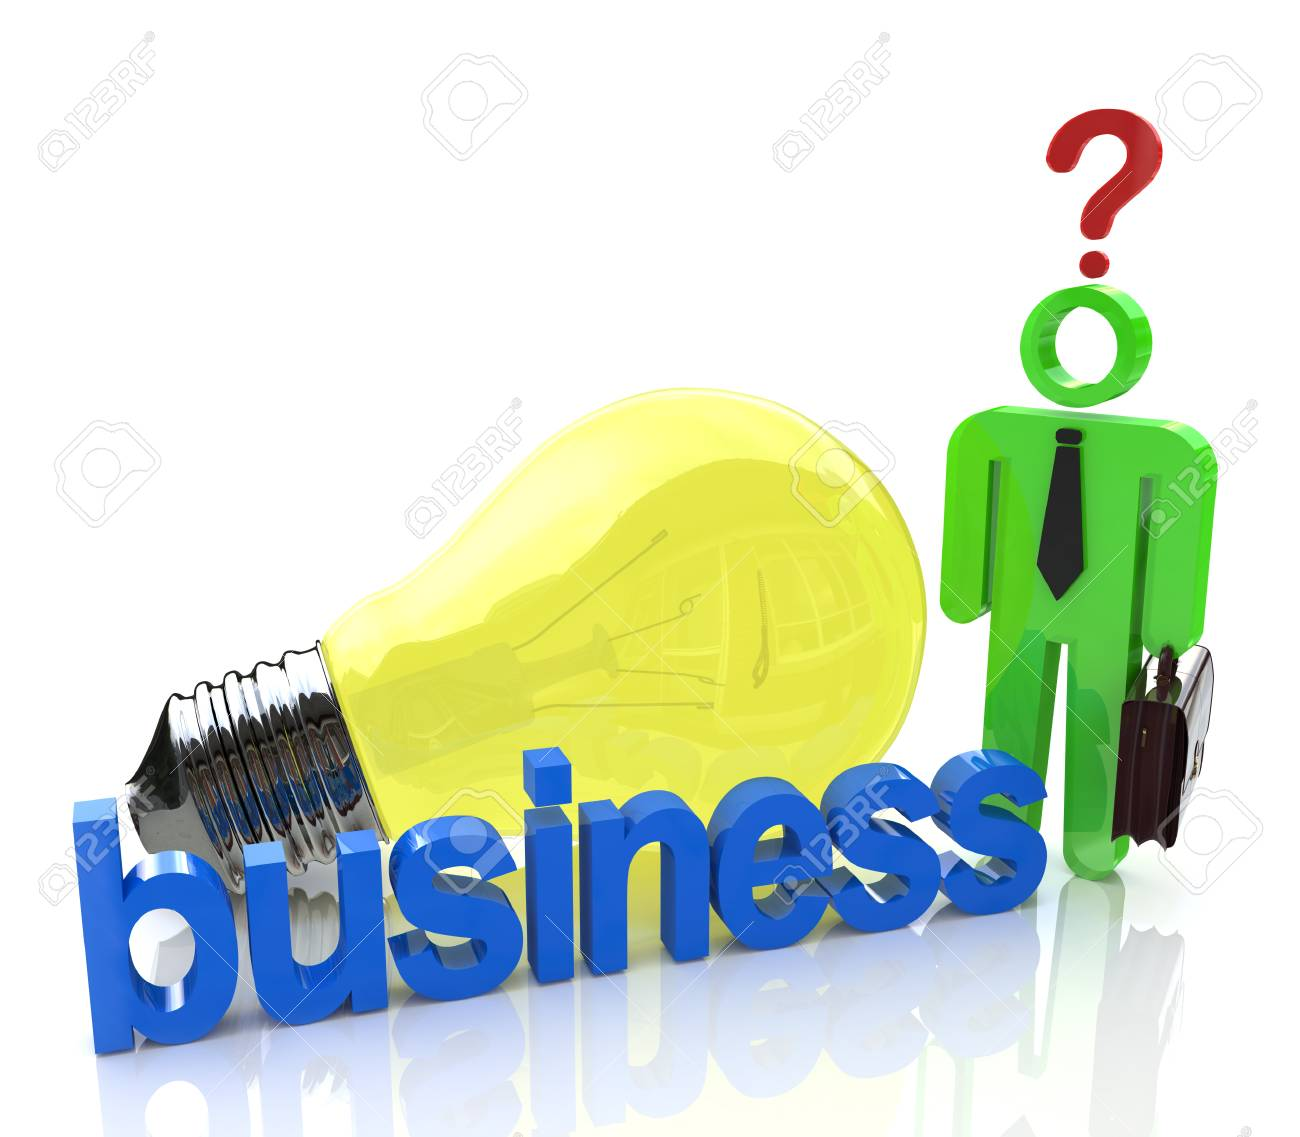 ideas of resolving the issues in business at registration information related to issues and ideas in business - 82455197